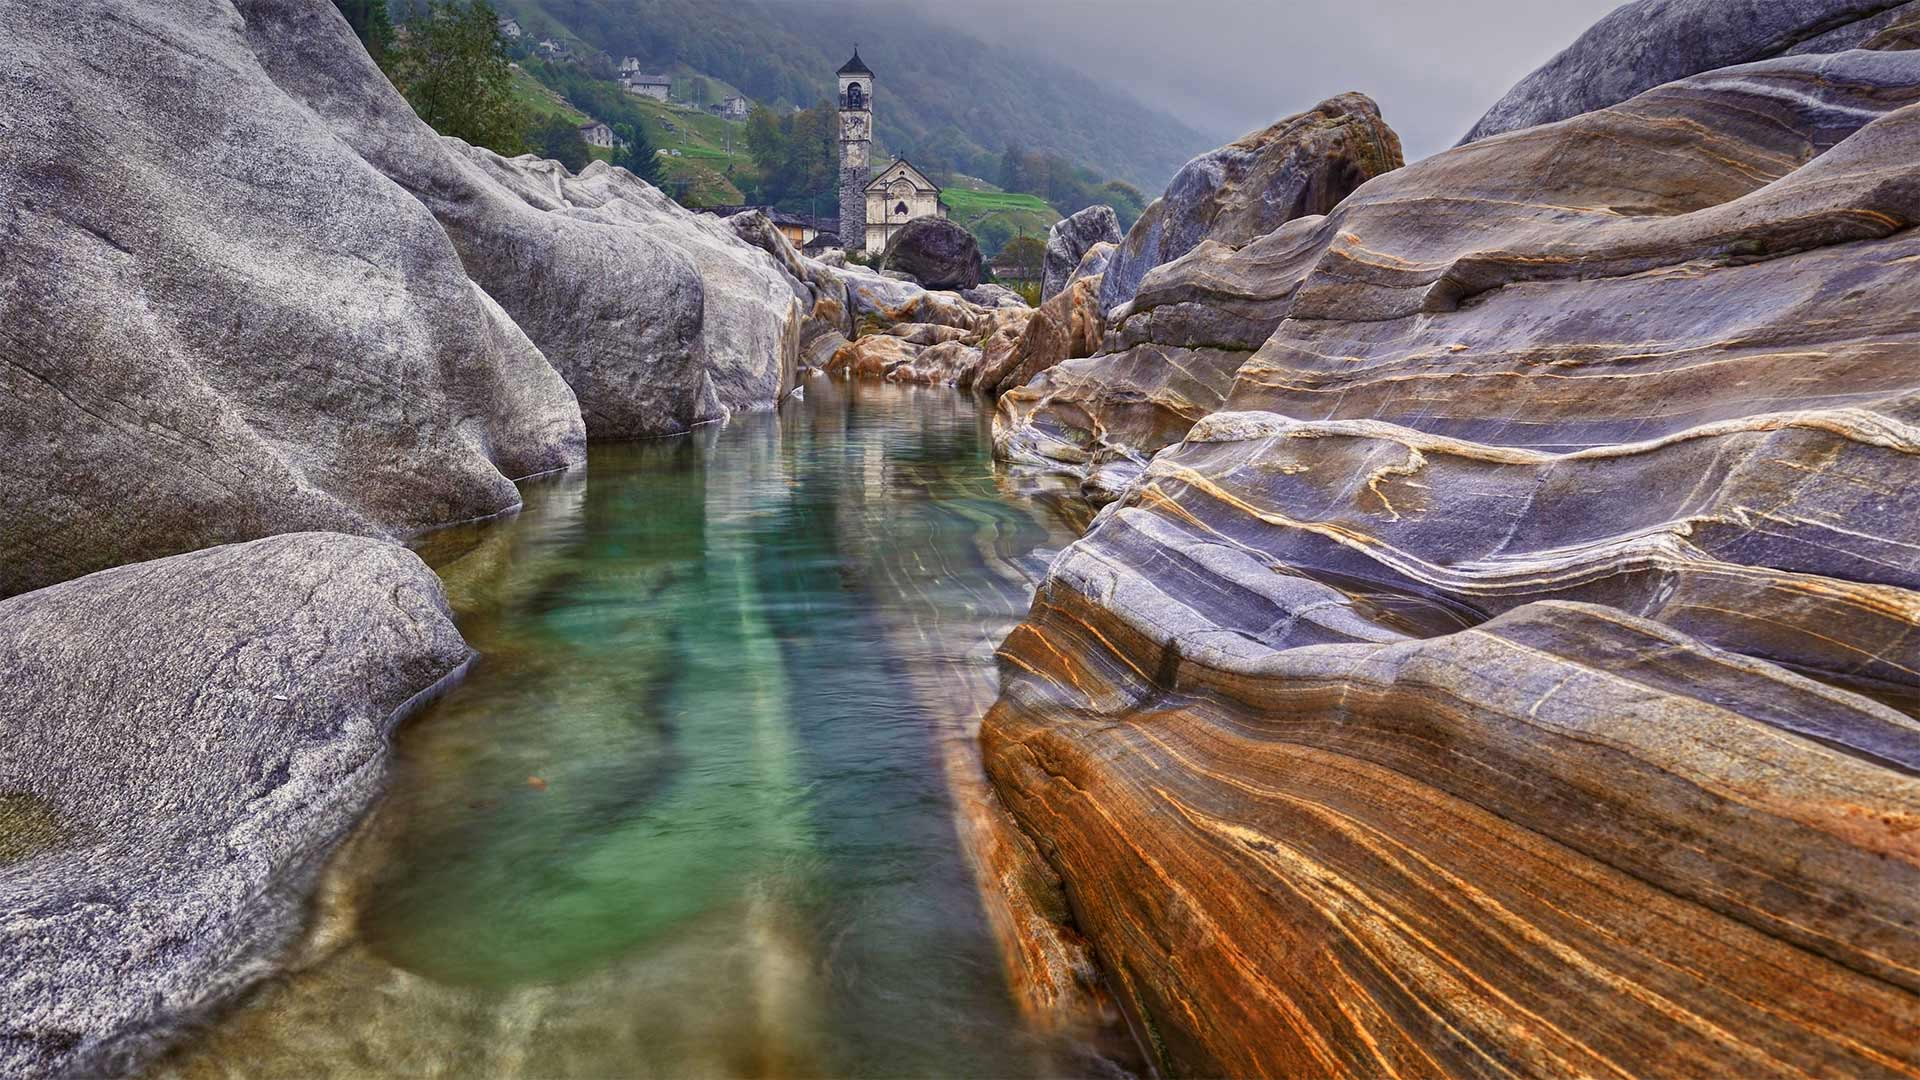 Rocks in the Verzasca River near the hamlet of Lavertezzo in the Valle Verzasca of Switzerland (© Robert Seitz/Offset by Shutterstock)(Bing United States)